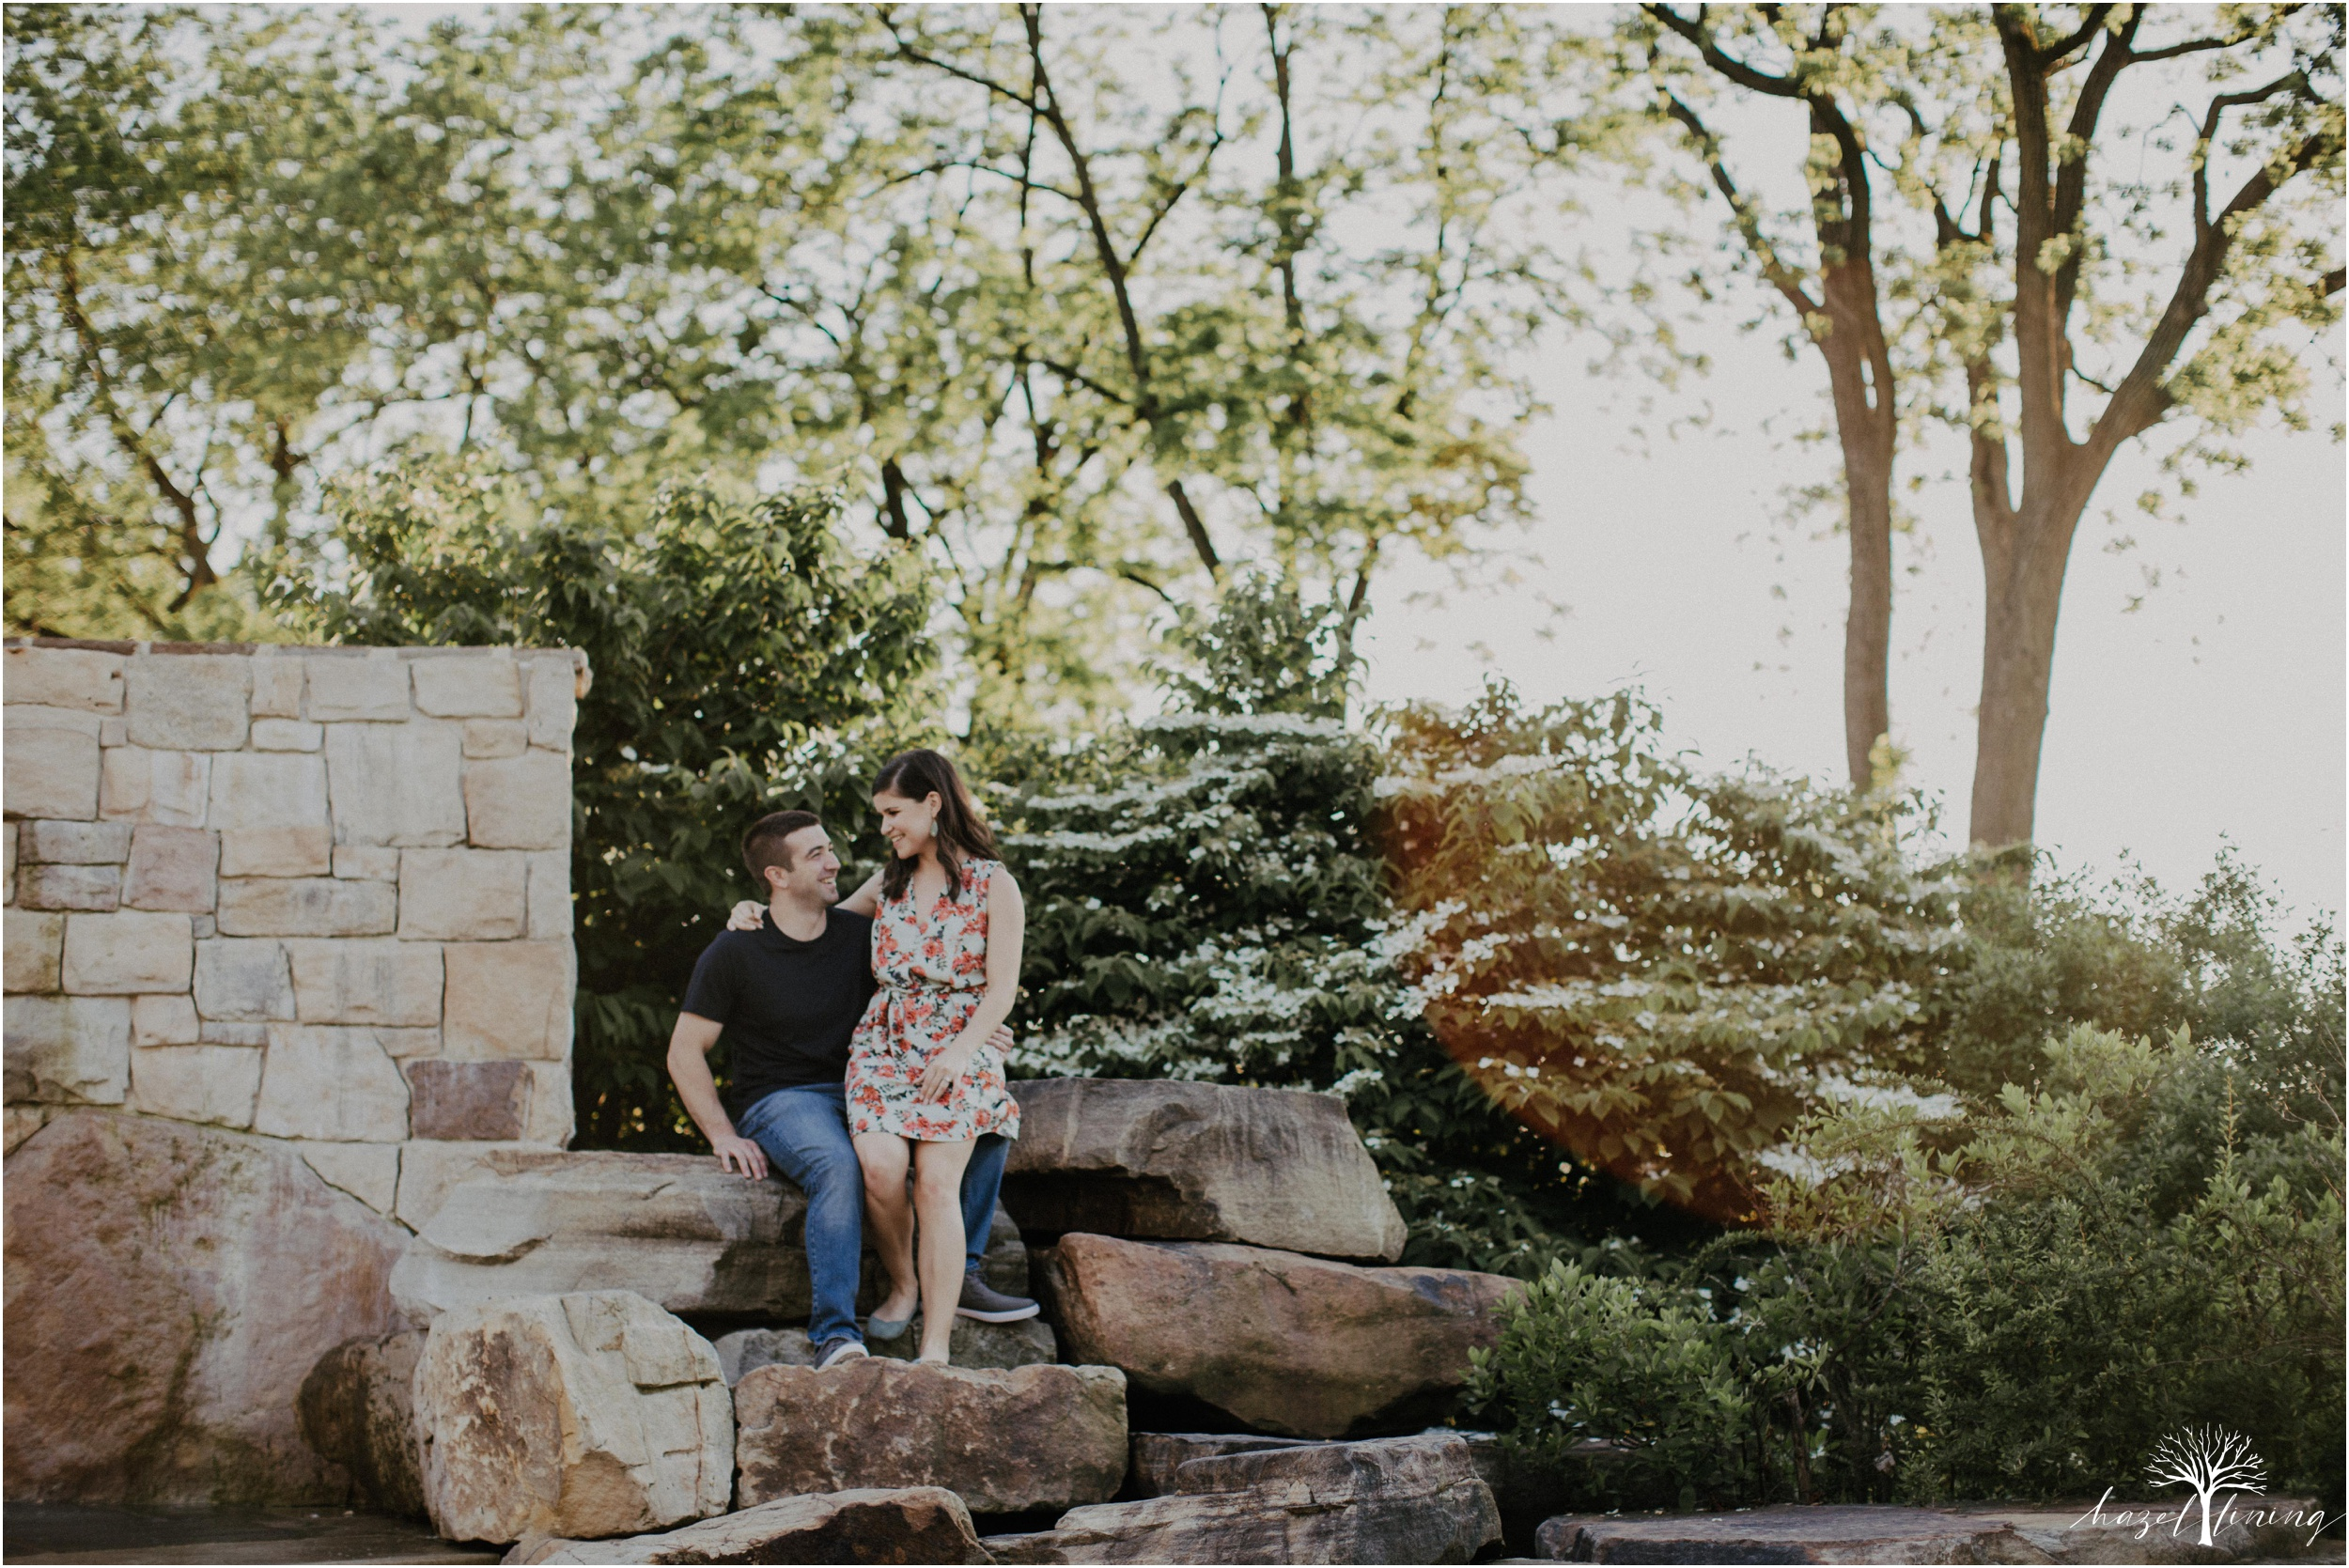 ellyn-jack-kutztown-university-of-pennsylvania-engagement-session-hazel-lining-photography-destination-elopement-wedding-engagement-photography_0250.jpg